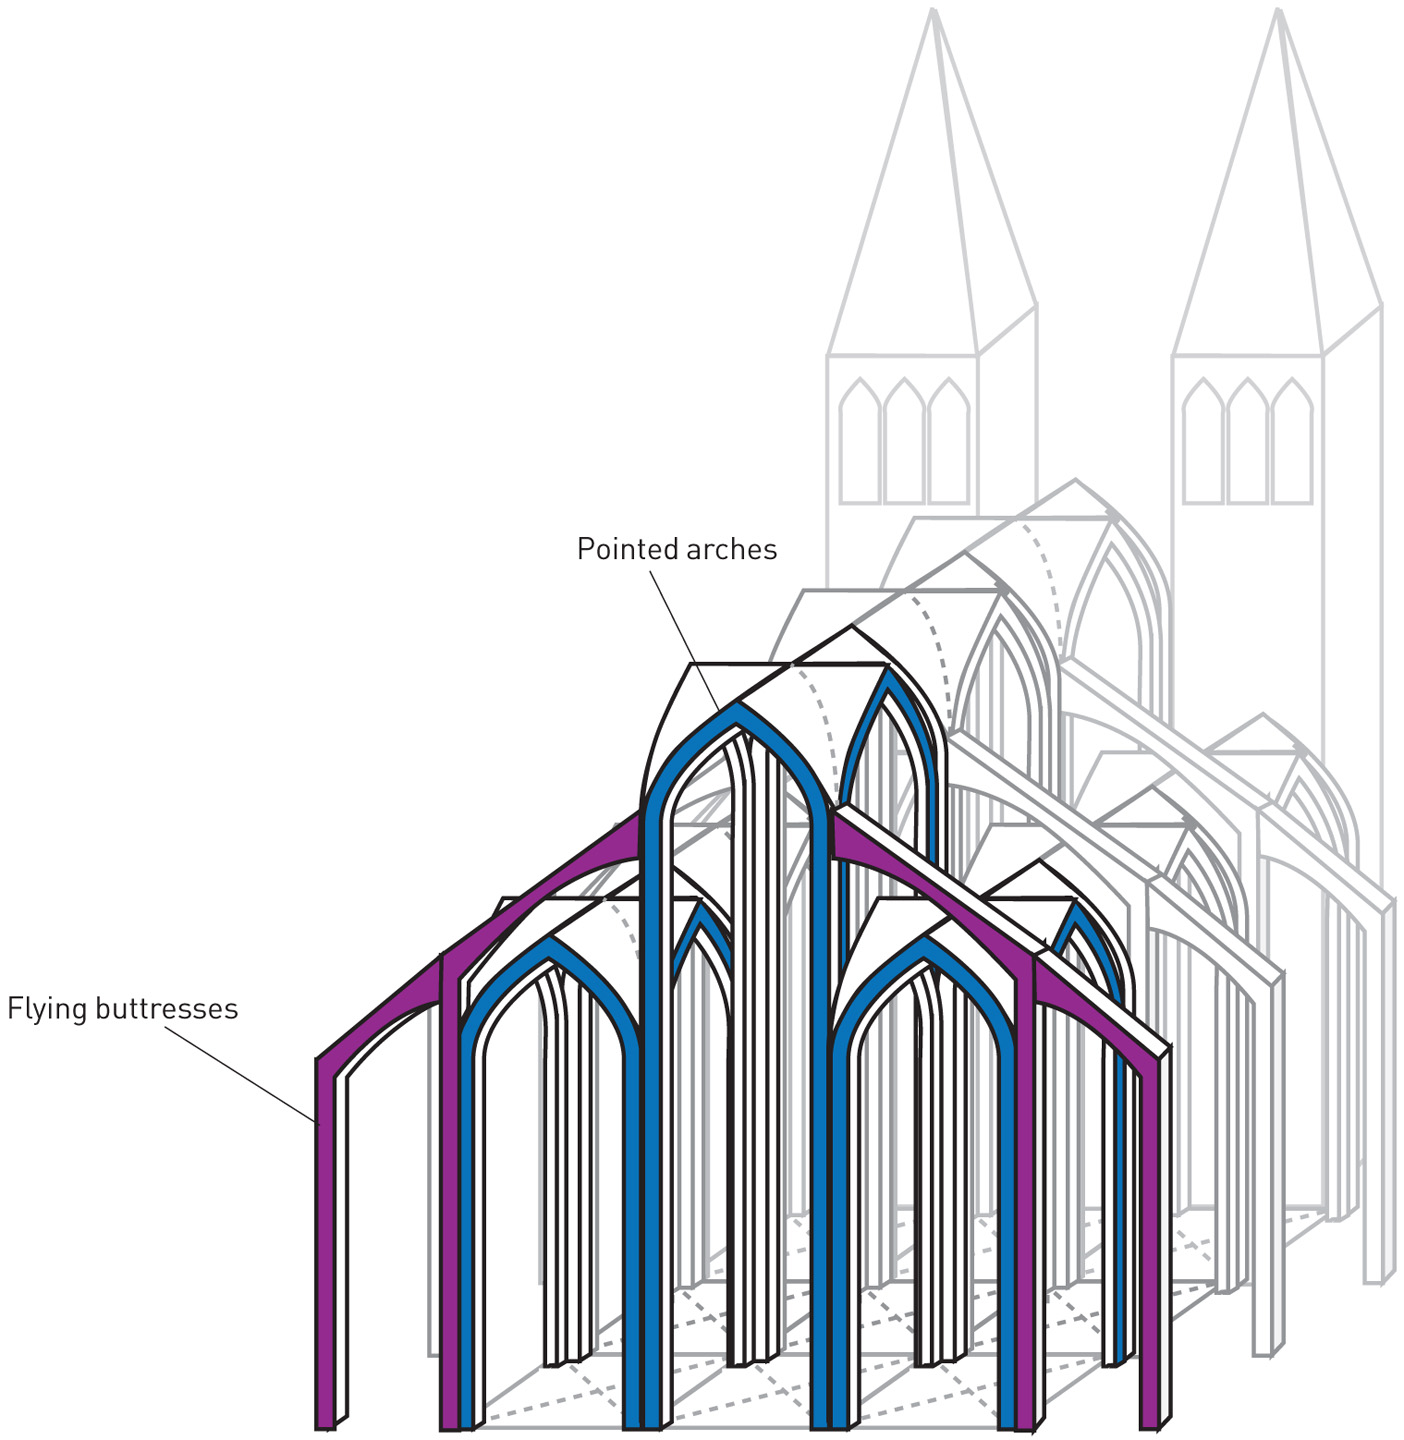 cathedral architecture gothic arches diagram how do you draw a stem and leaf dh 07 cathedrals arms 322 ides